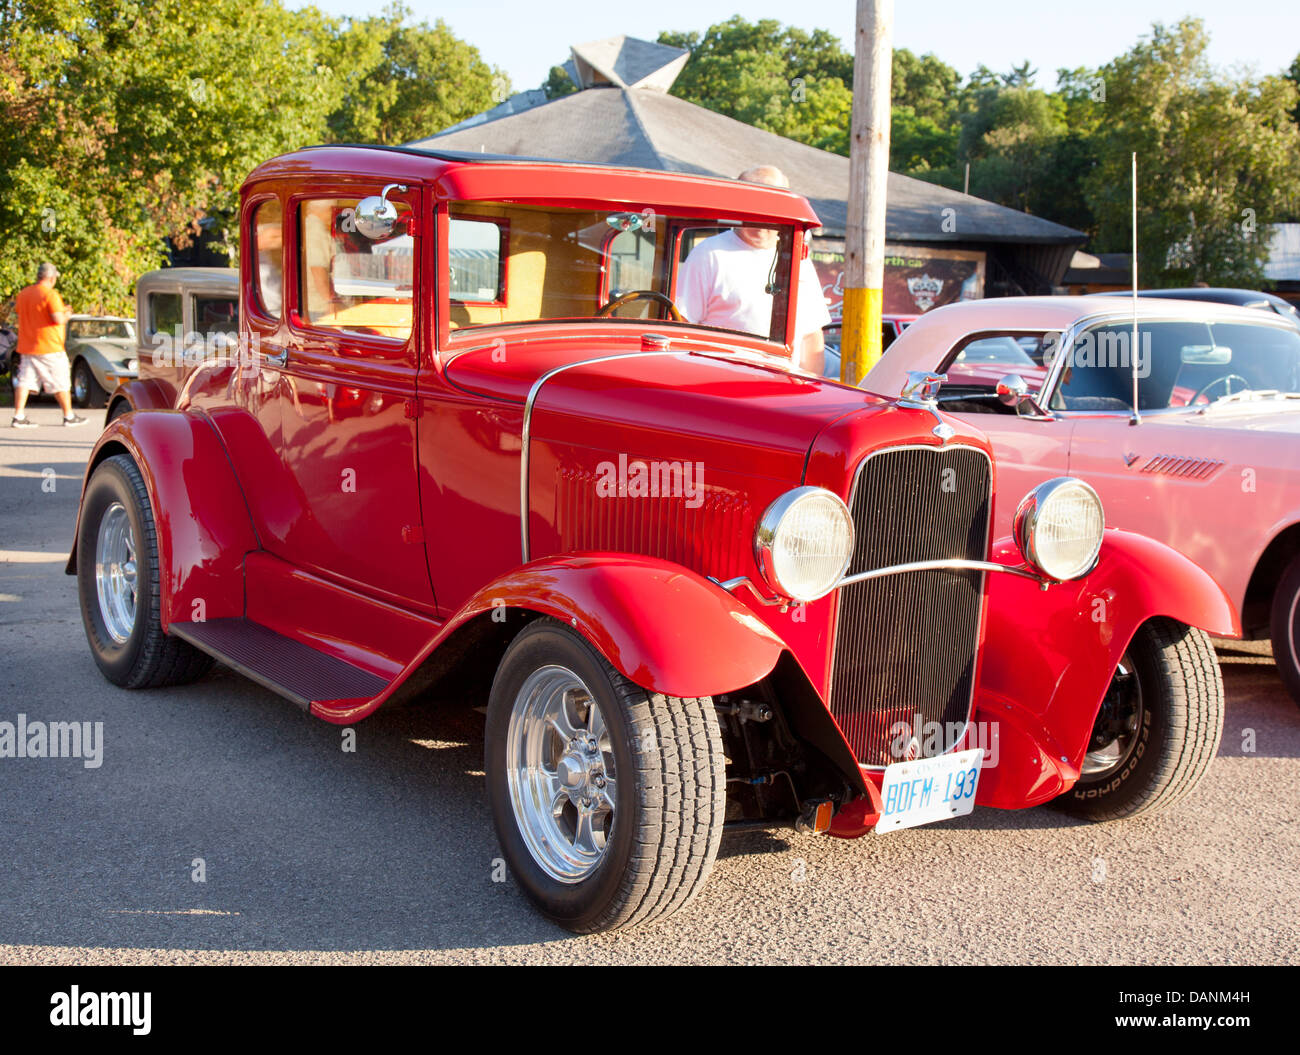 vintage classic roadster at car show - Stock Image